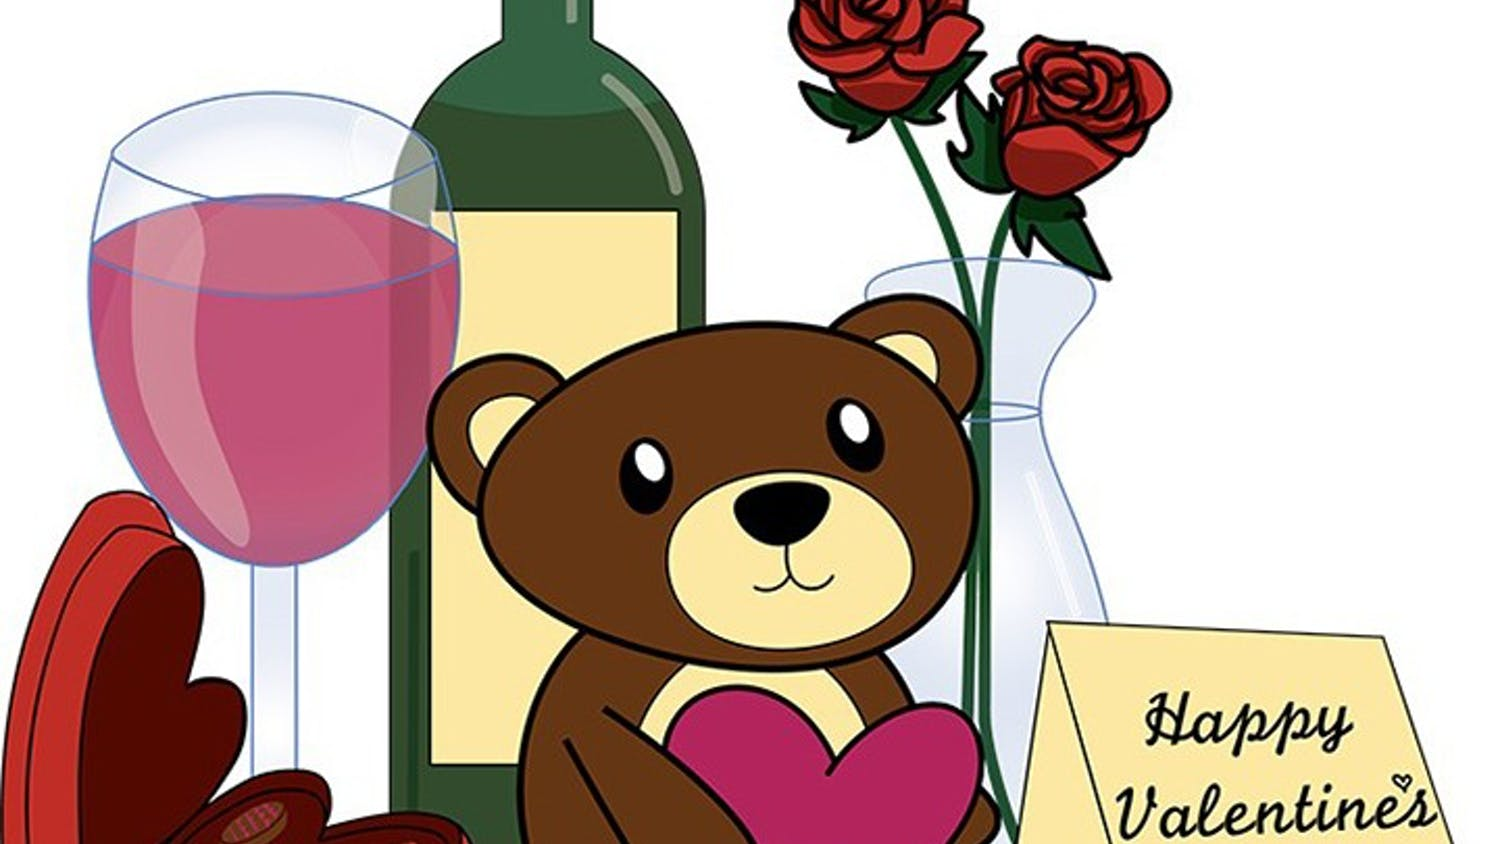 Traditional Valentines day items include stuffed animals, wine, chocolates and flowers. These materialistic items have become a staple of the holiday.